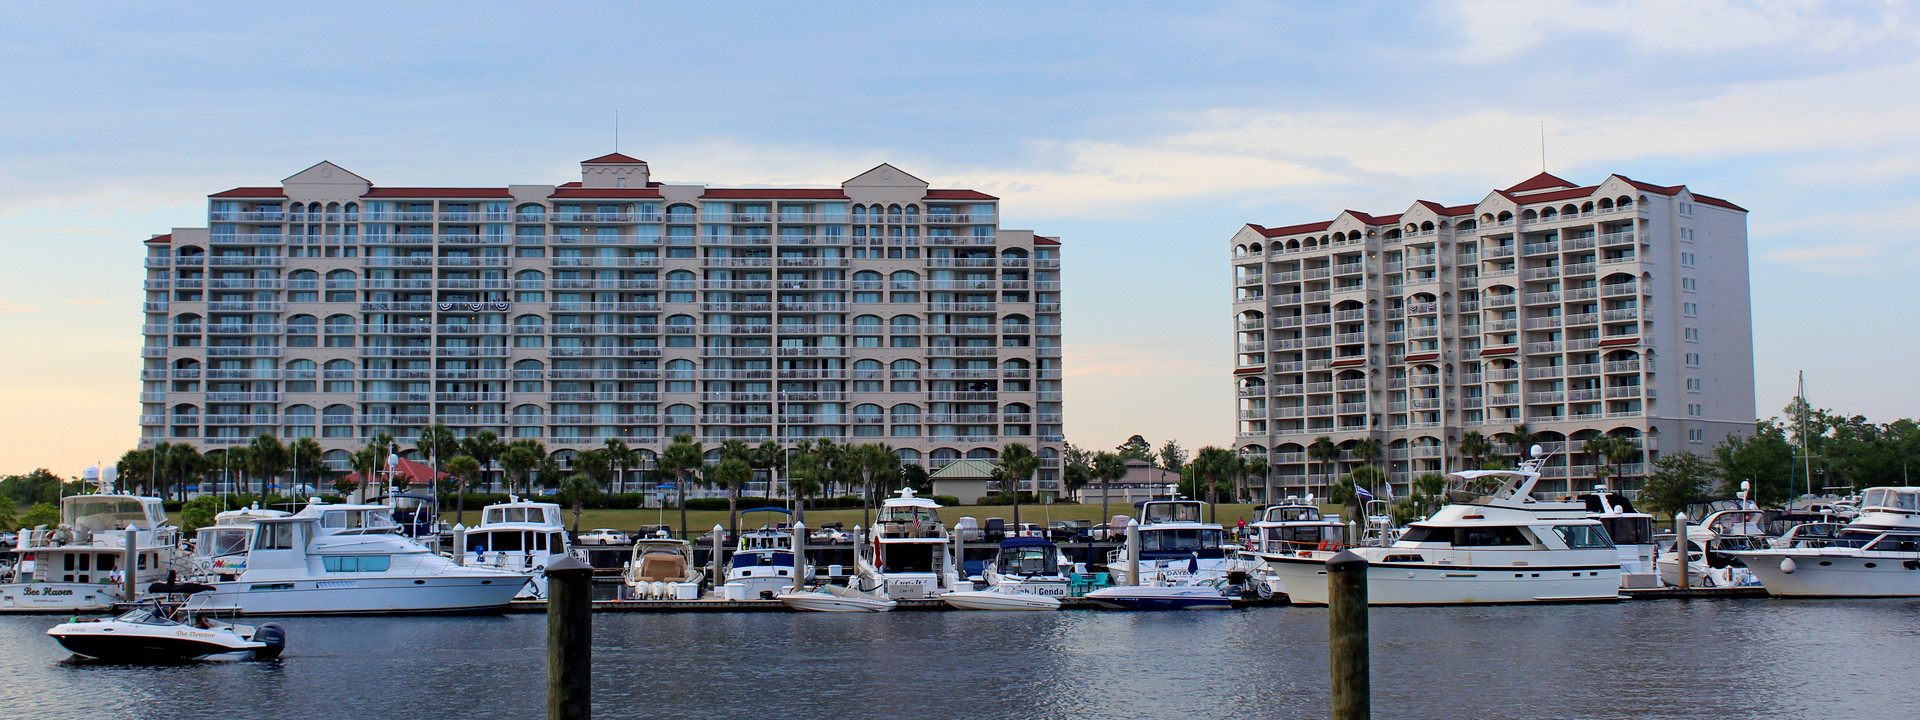 Luxury Condos at Barefoot Resort Marina North Myrtle Beach SC